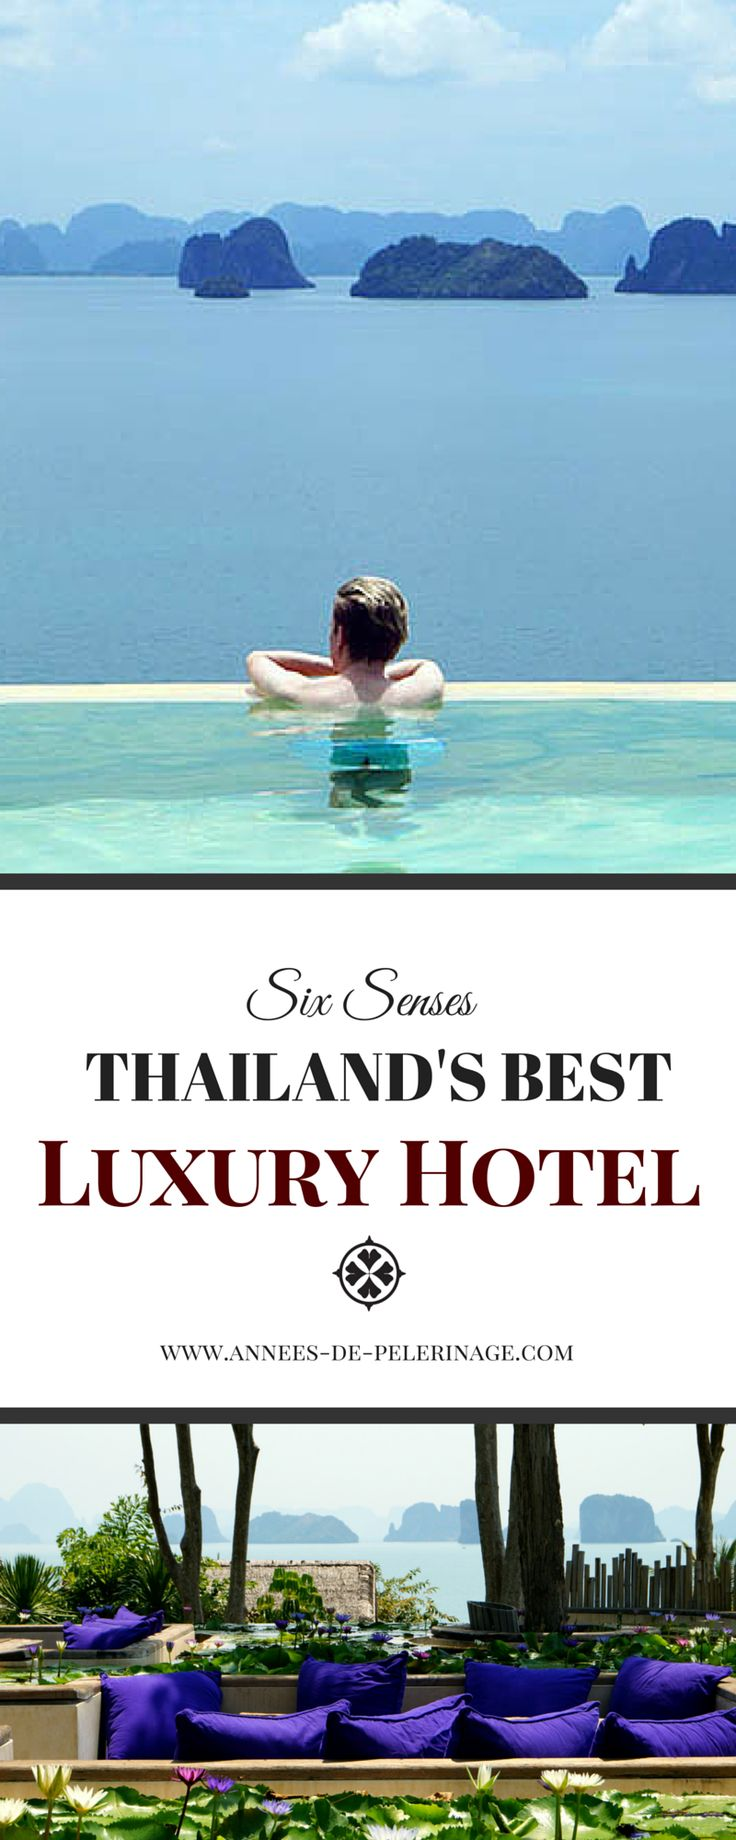 The Six Senses Hotel On Remote Koh Yao Noi Might Be Thailand S Best Luxury